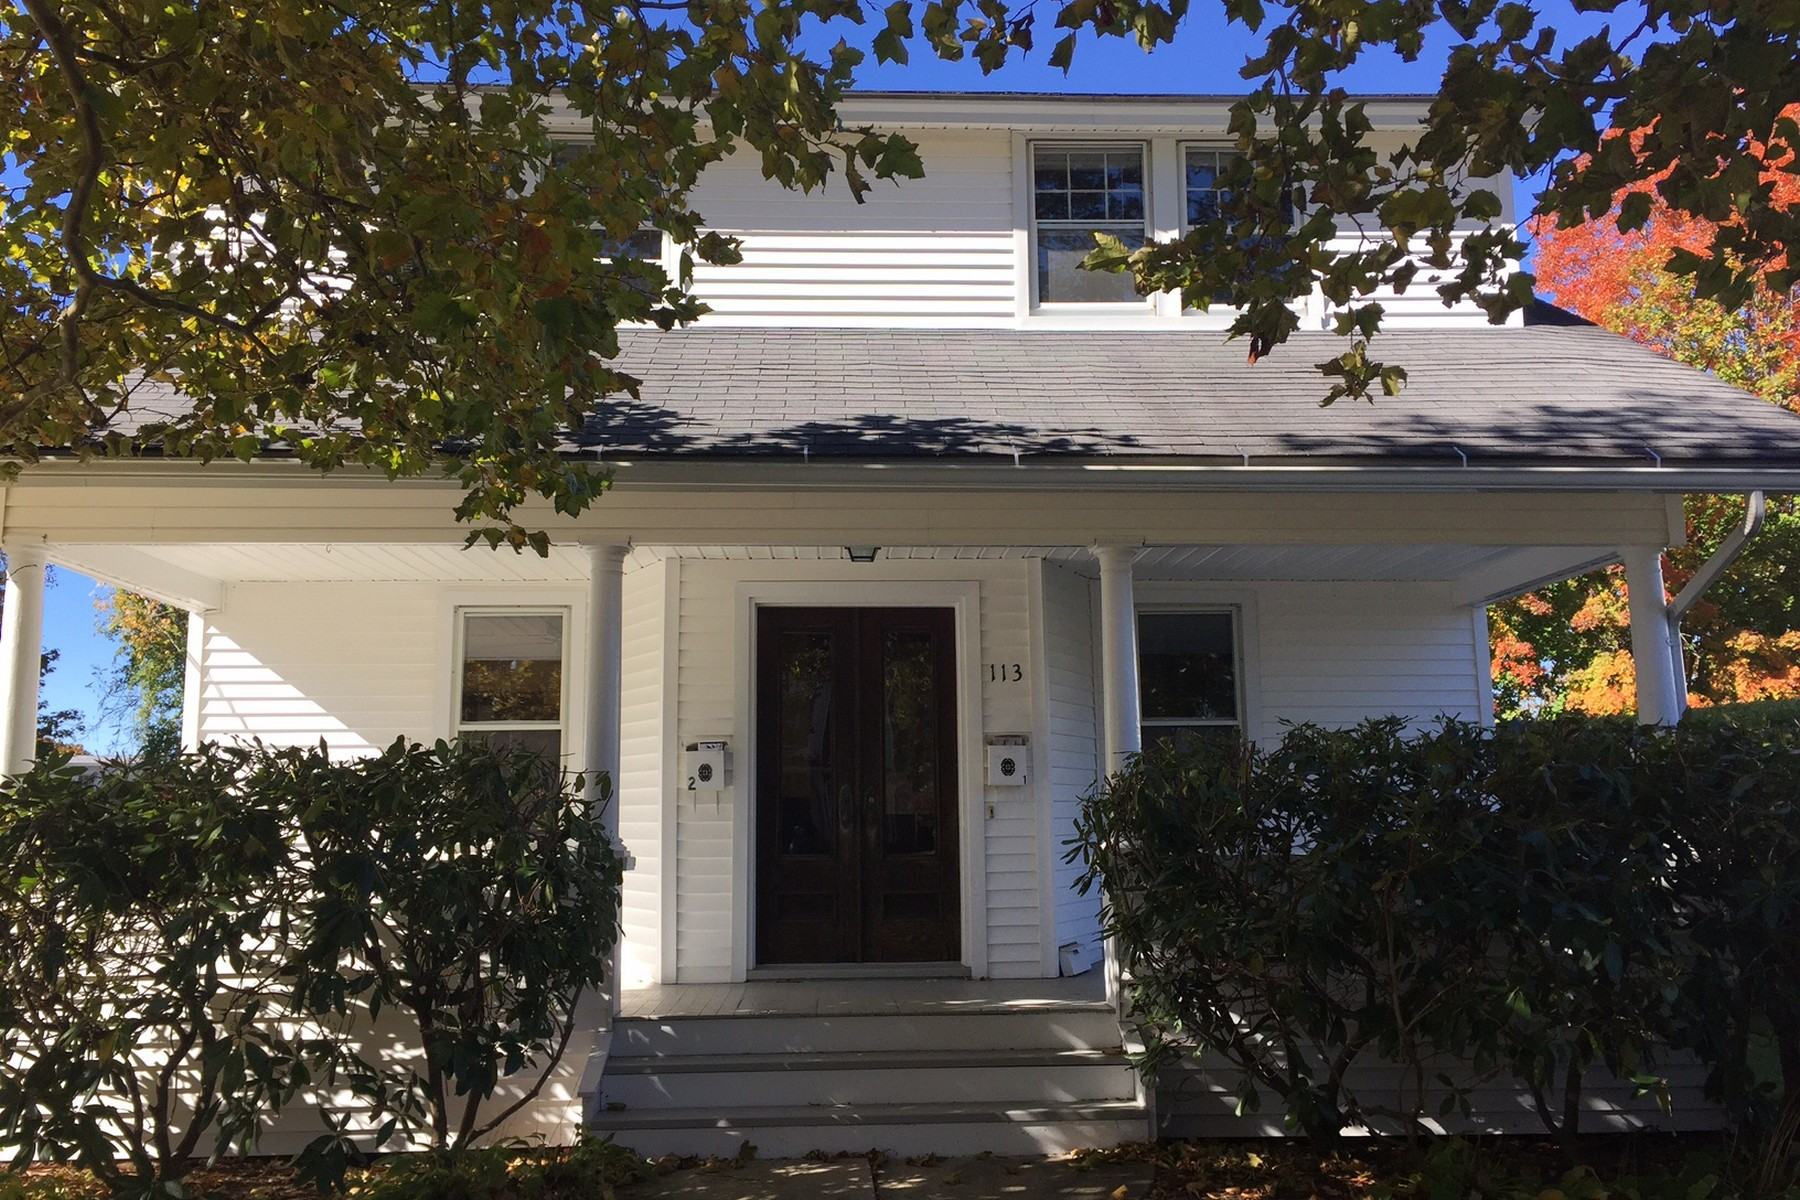 Single Family Home for Sale at 113 Commerce Street Clinton, Connecticut 06413 United States